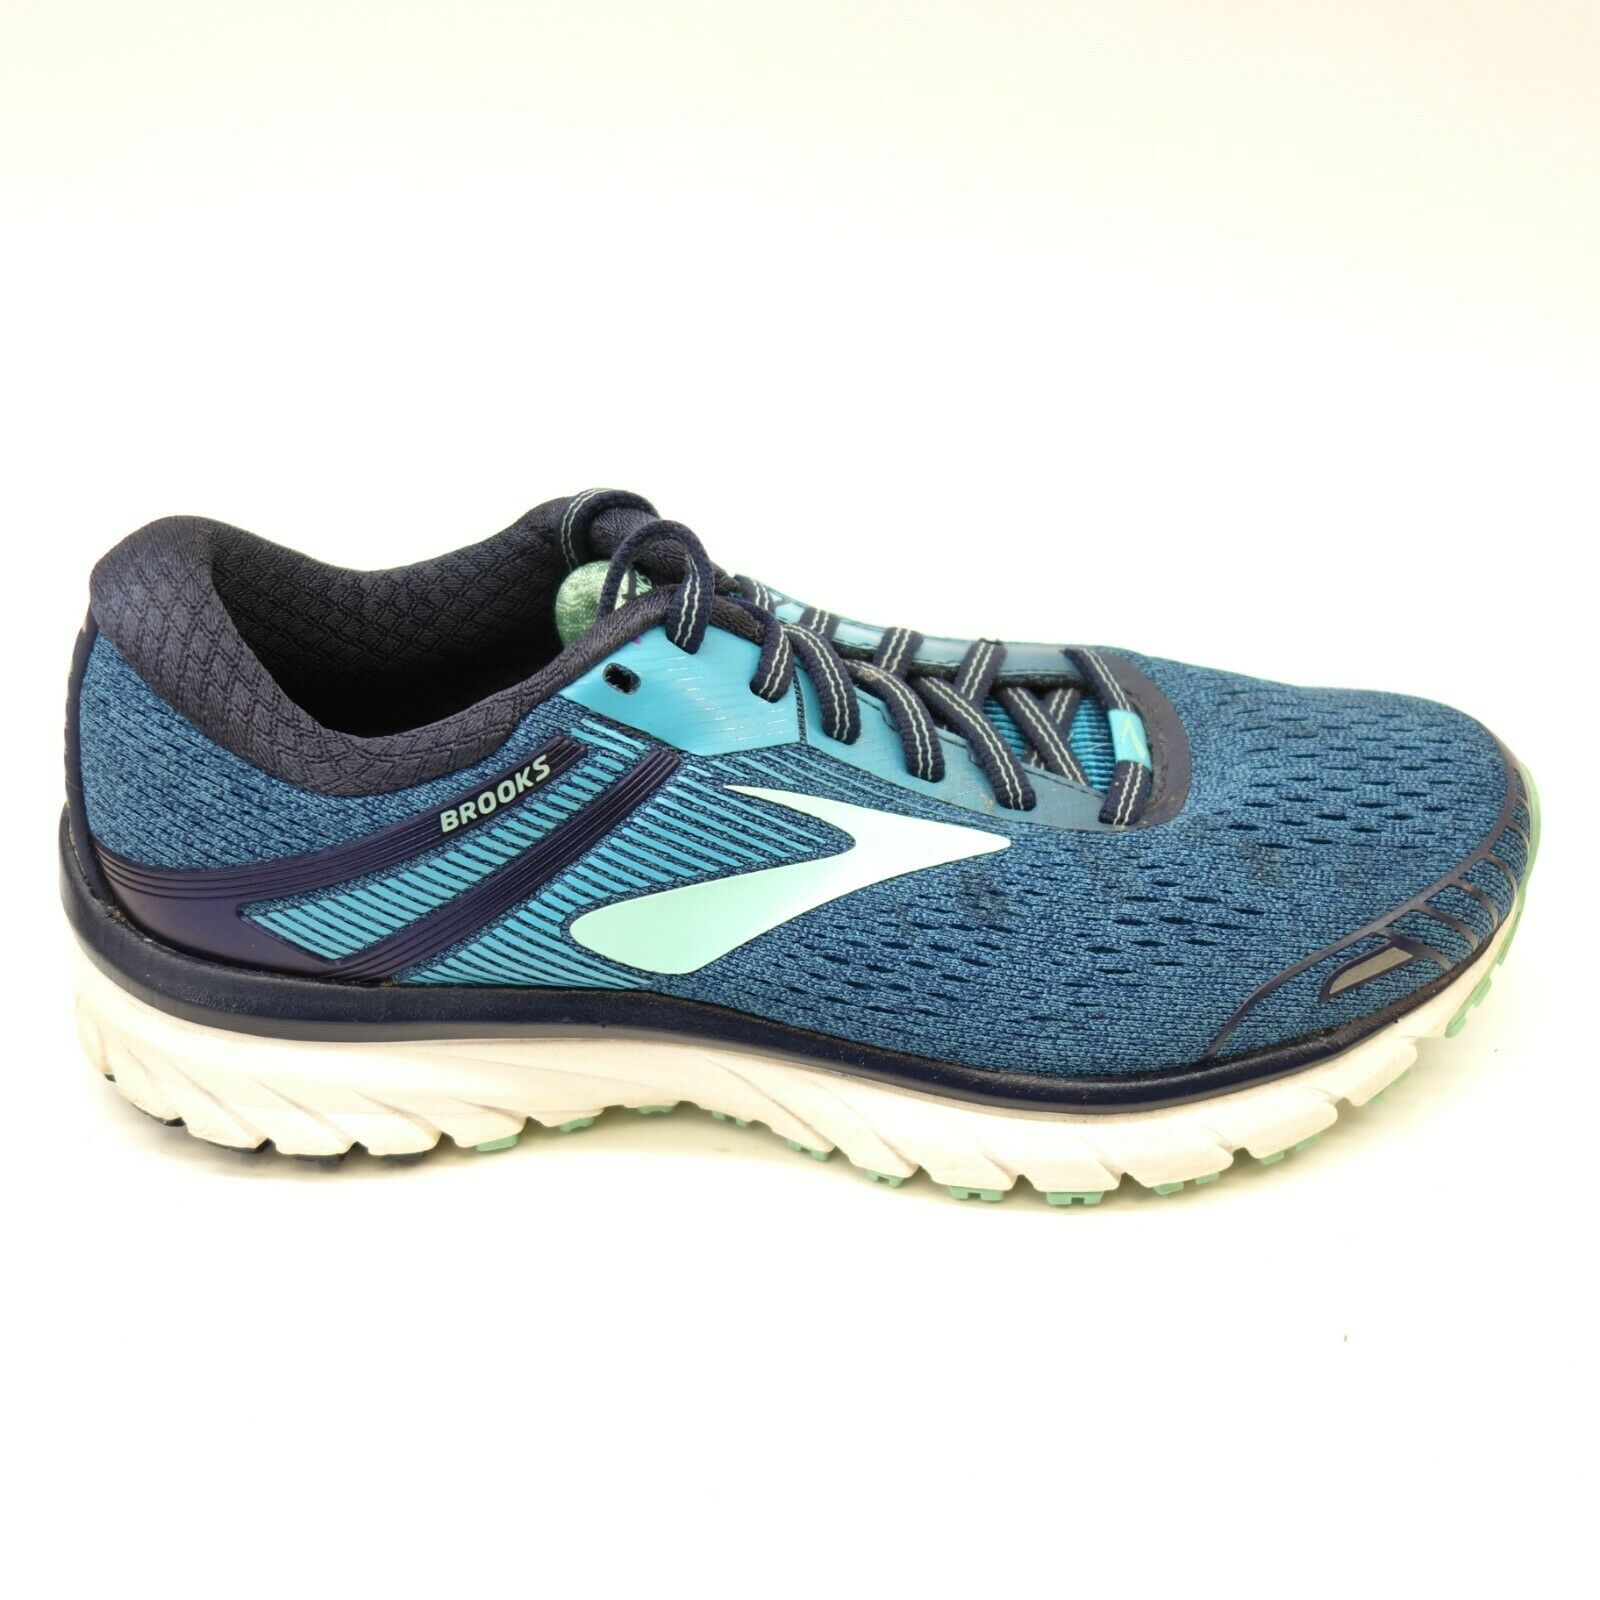 Brooks Damen Damen Damen Adrenalin GTS 18 Blau Athletic DNA Straße Laufschuhe Gr. UK 8    b3fcea